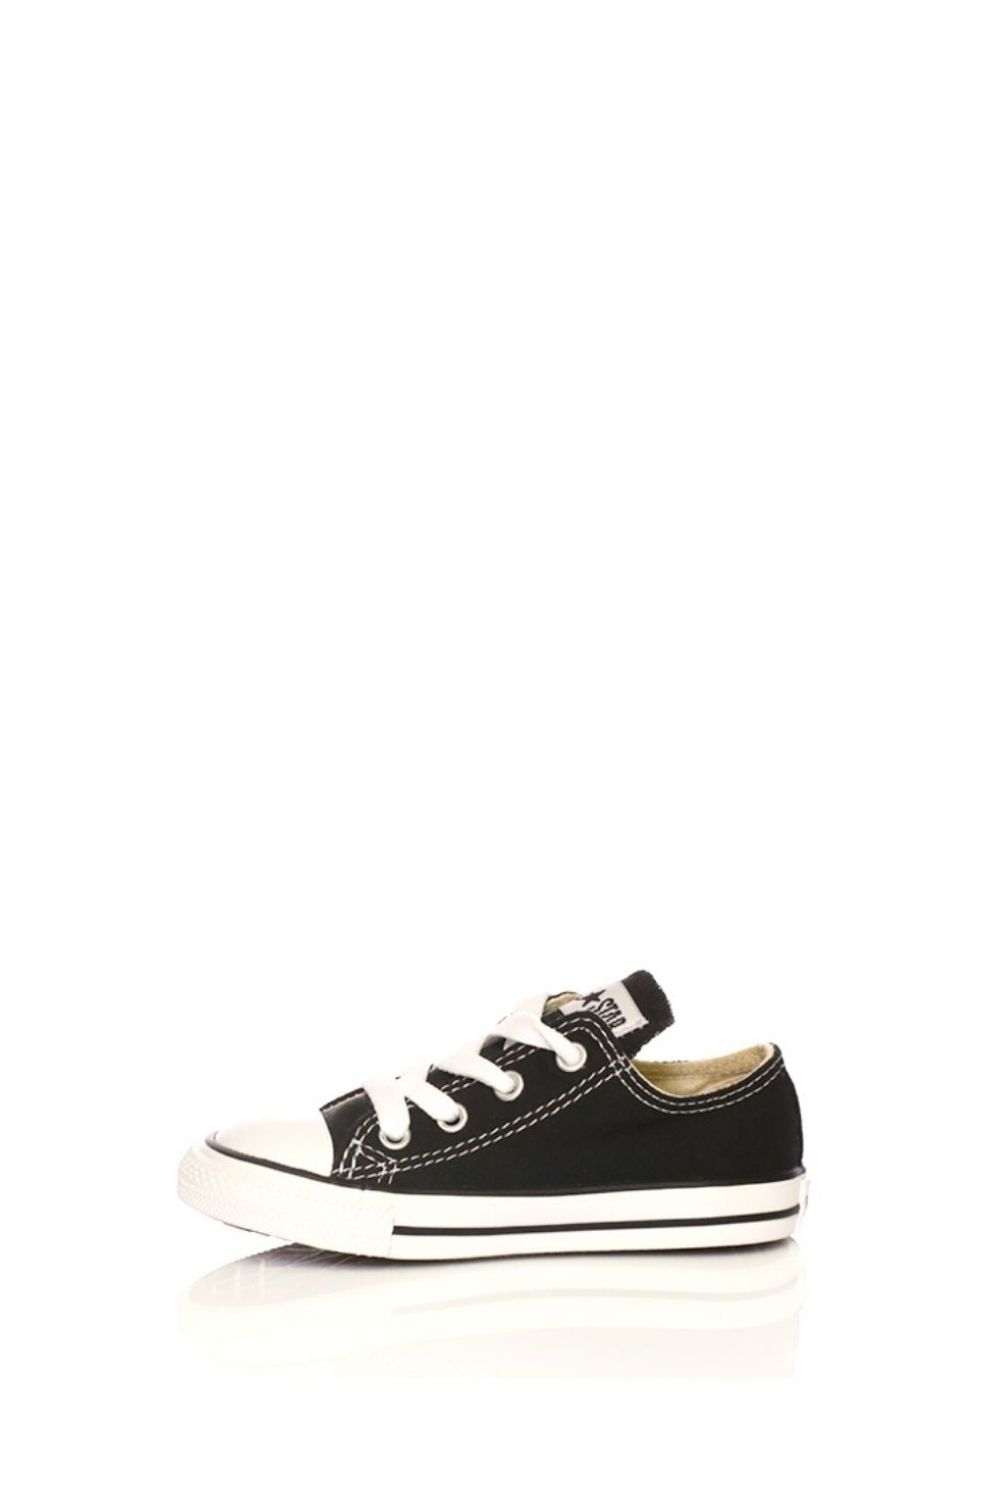 -30% Collective Online CONVERSE – Βρεφικά sneakers Converse Chuck Taylor OX  μαύρα 1bc756f0e14